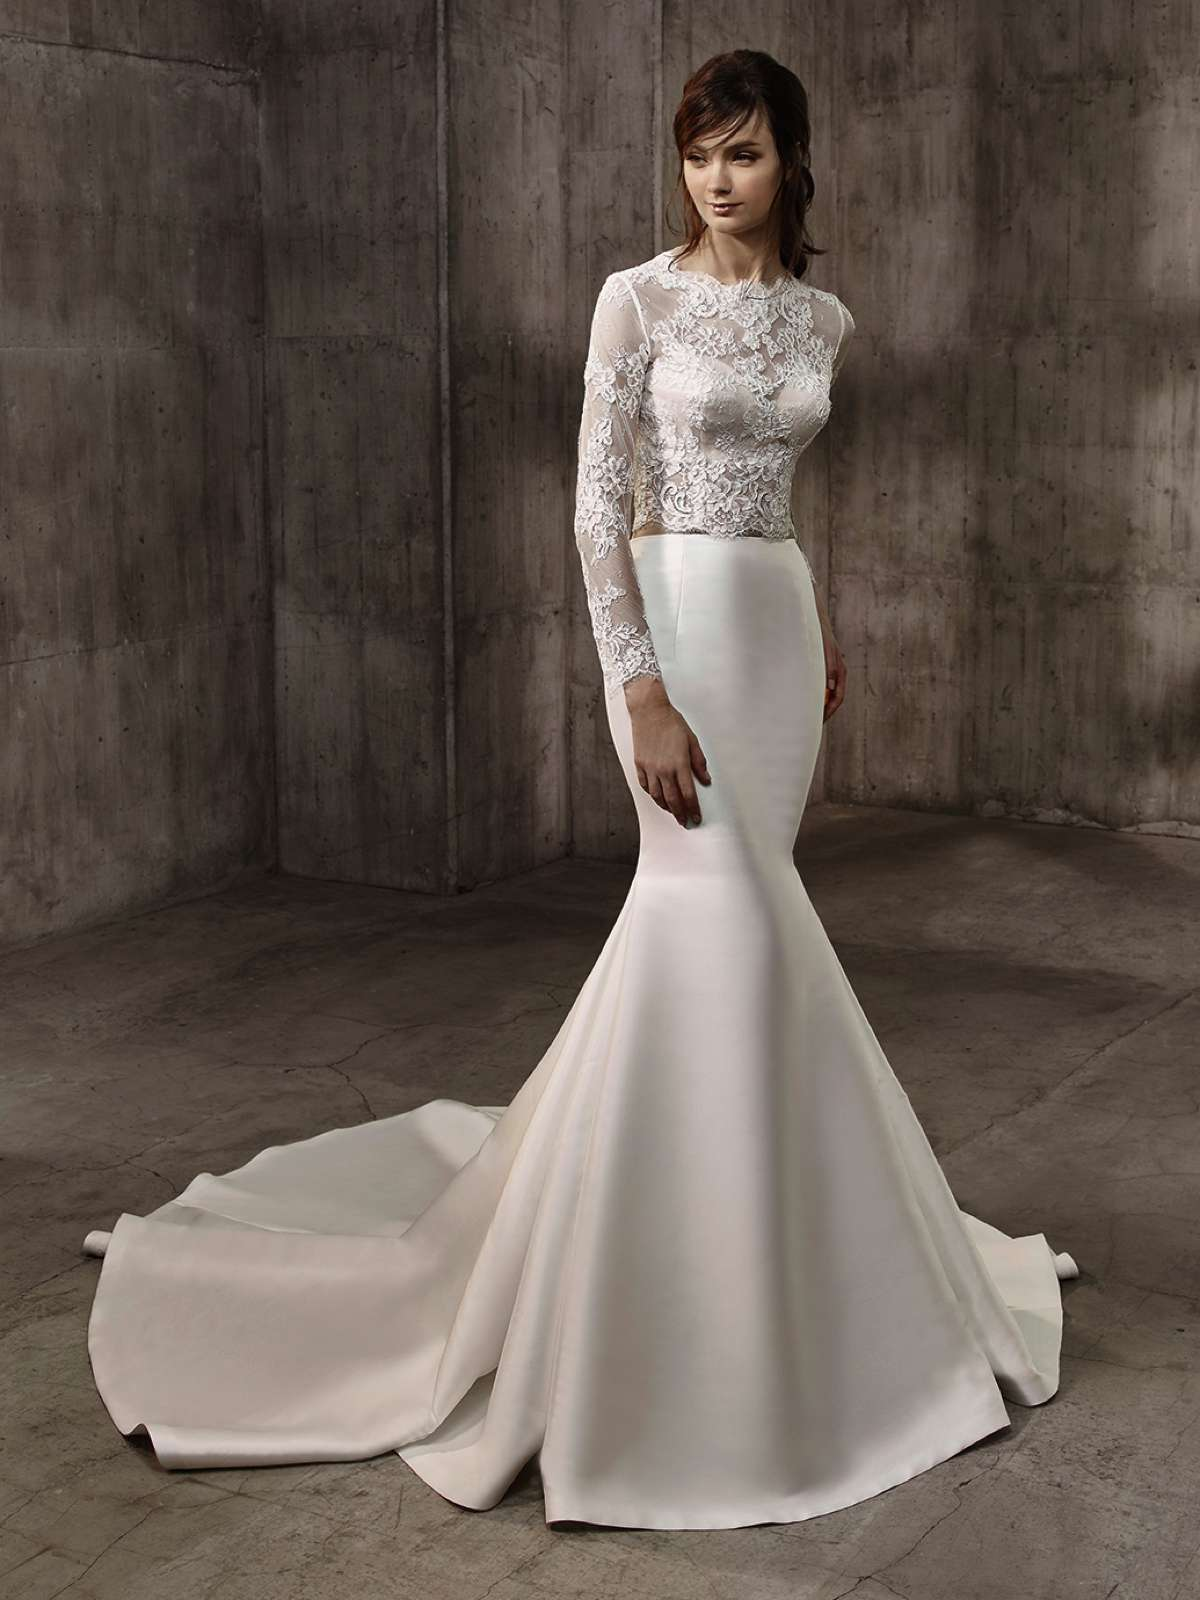 The Luxurious New Collections From Badgley Mischka Love Our Wedding,Guest Wedding Dresses For Men